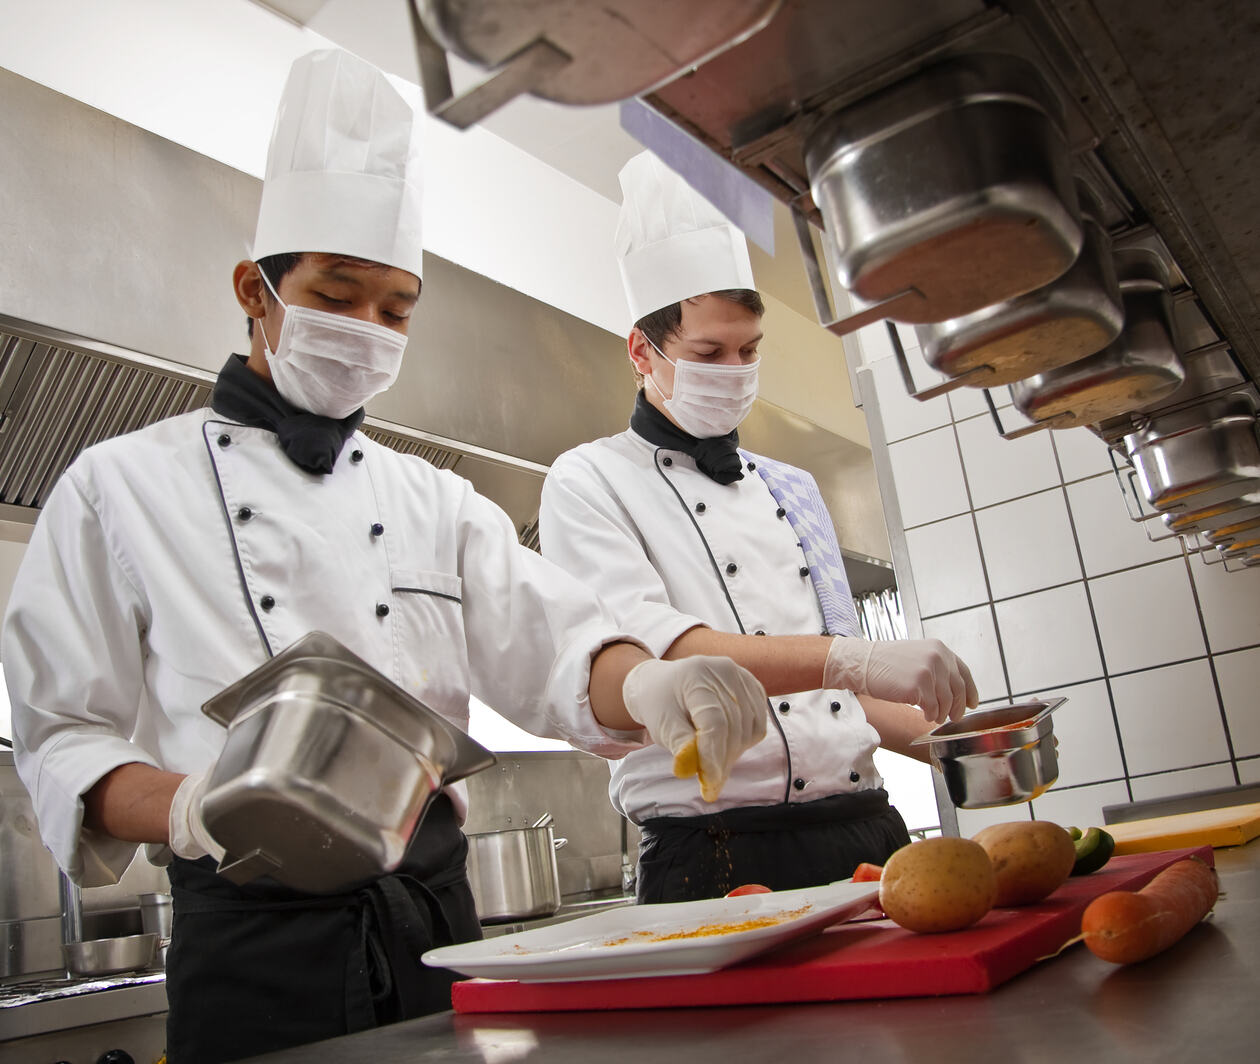 Food Safety and Personal Hygiene in a Professional Kitchen